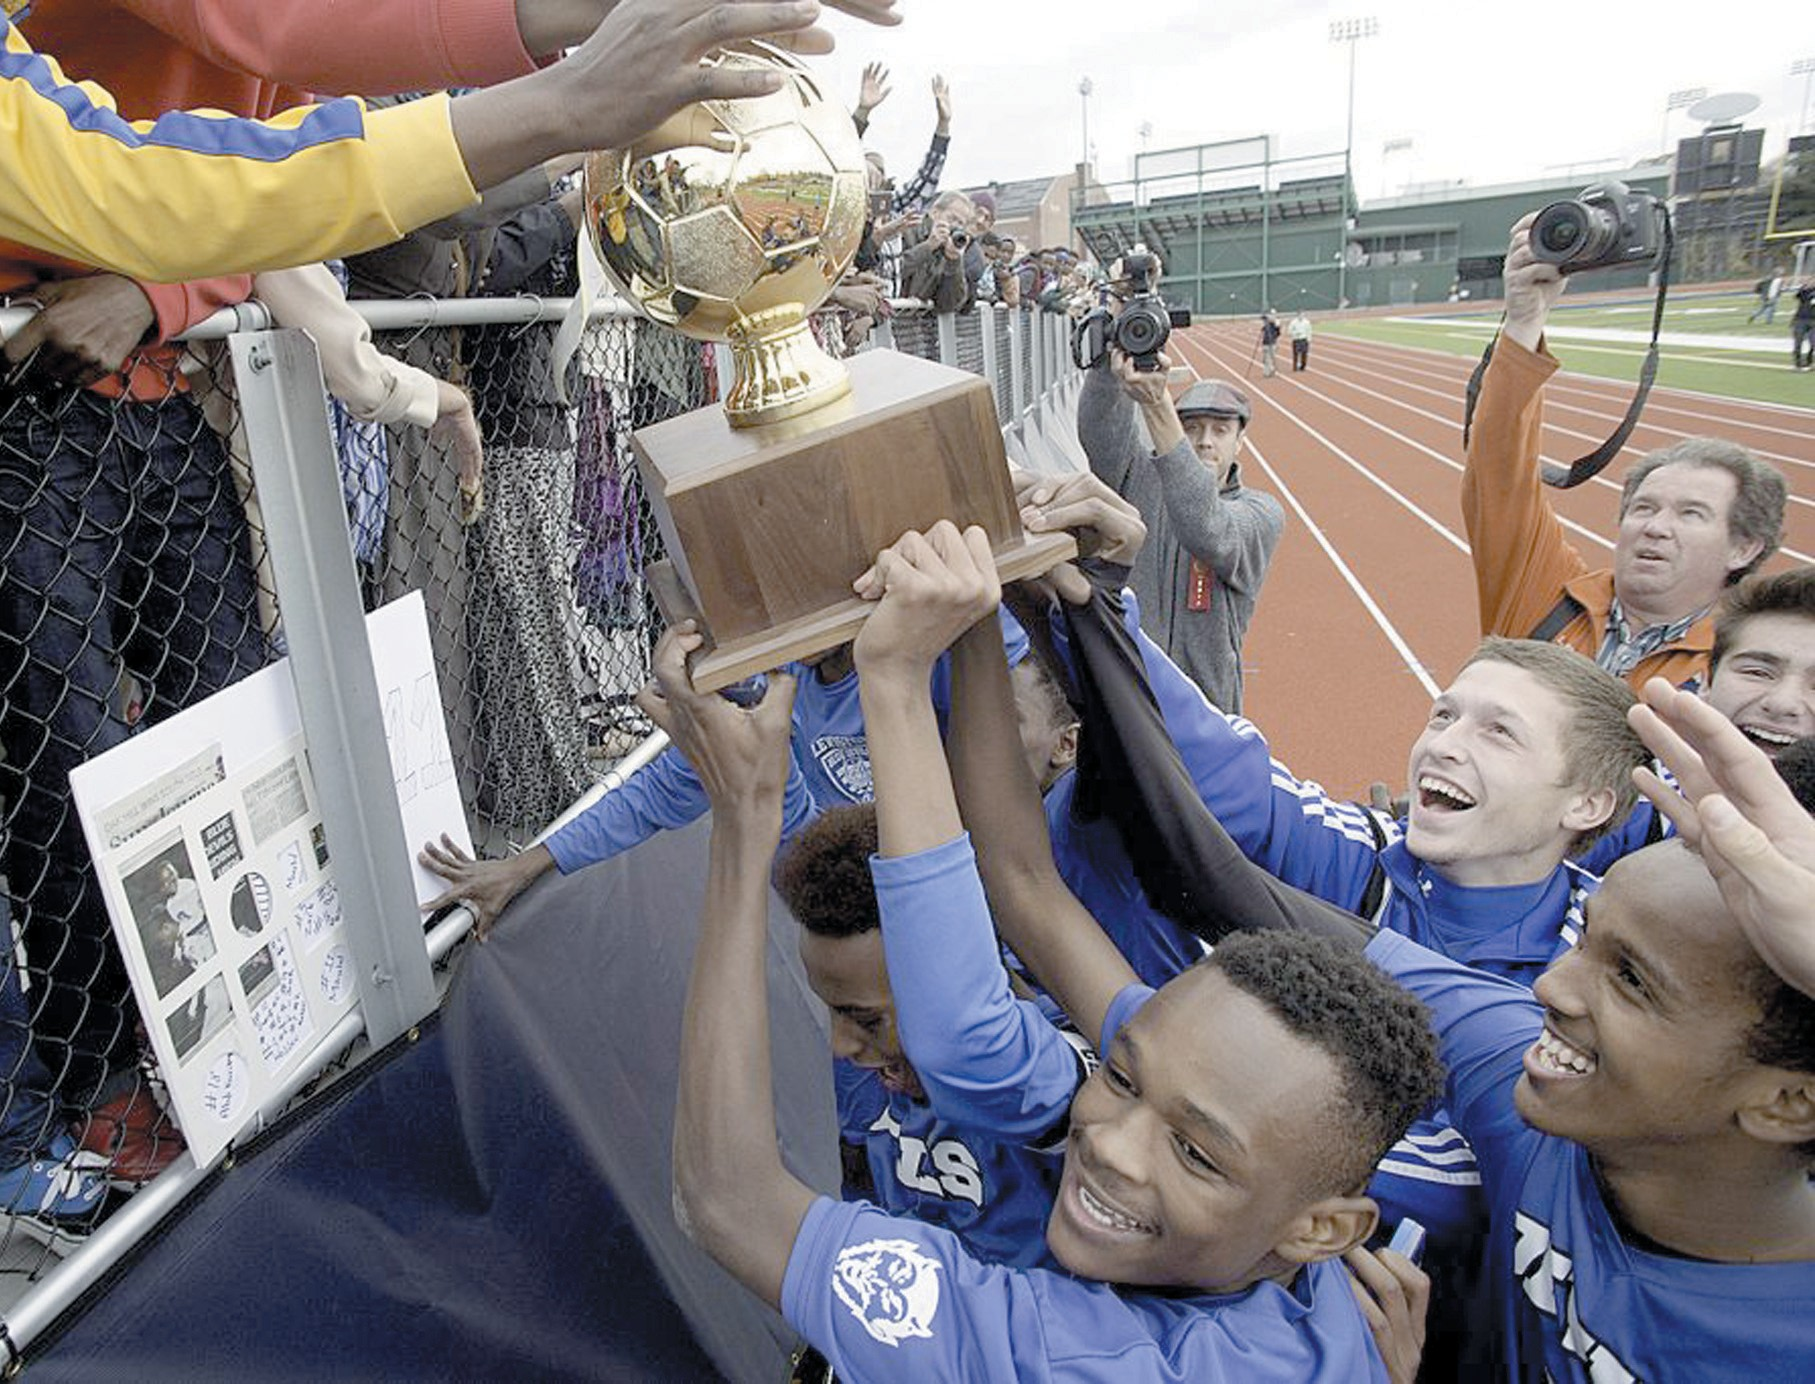 THE LEWISTON HIGH SCHOOL soccer team hoists the Maine Principal's Association trophy for their fans to see after winning the Class A state championship. SUN JOURNAL PHOTO